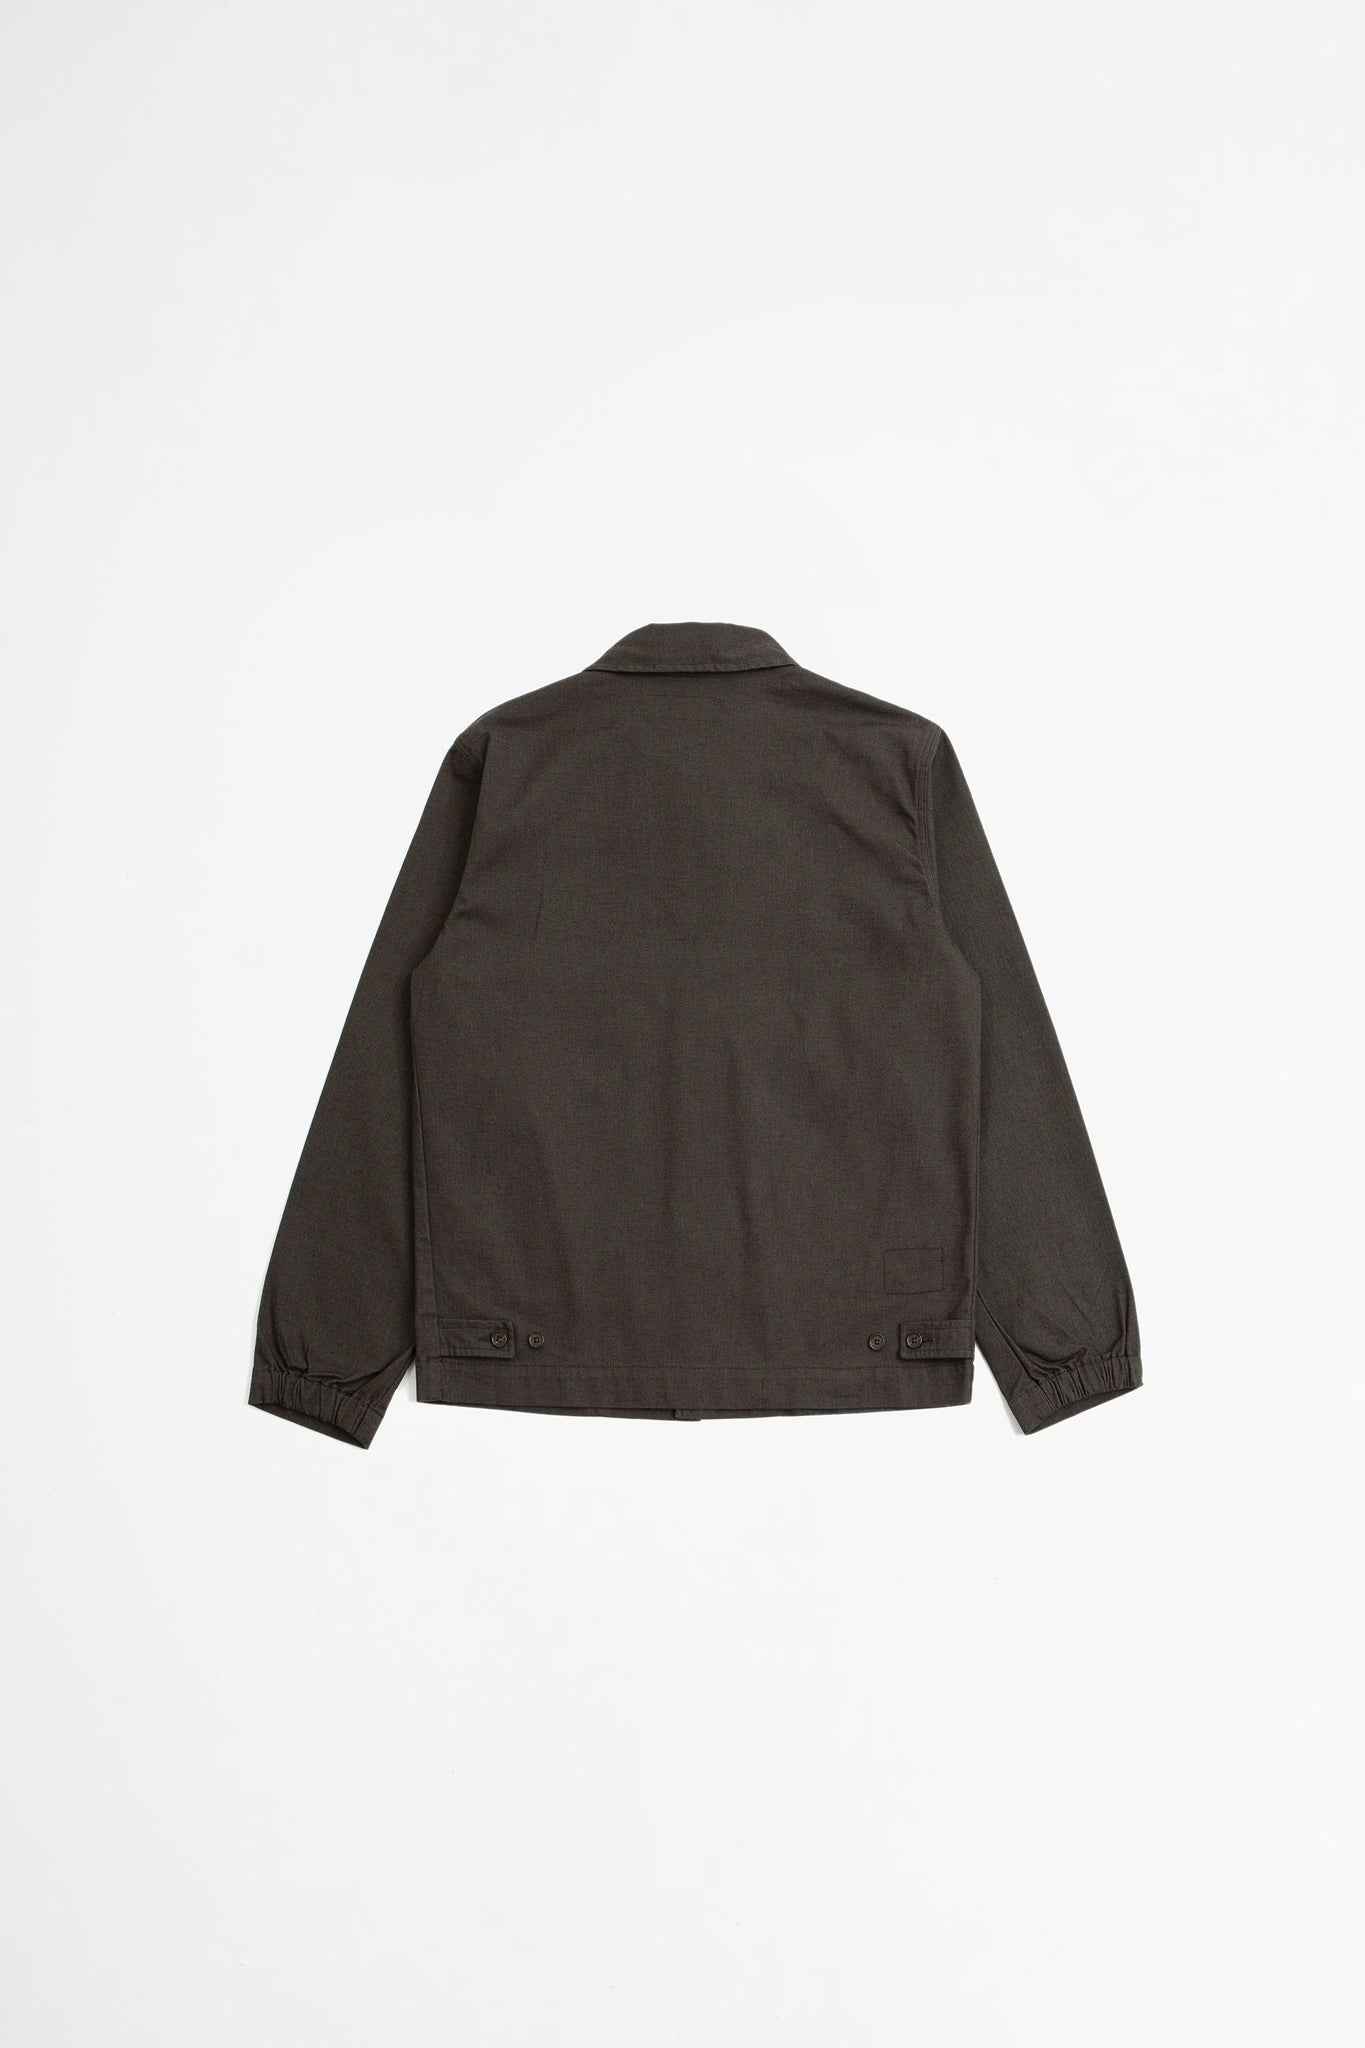 Watchman II jacket tinto cotton chocolate